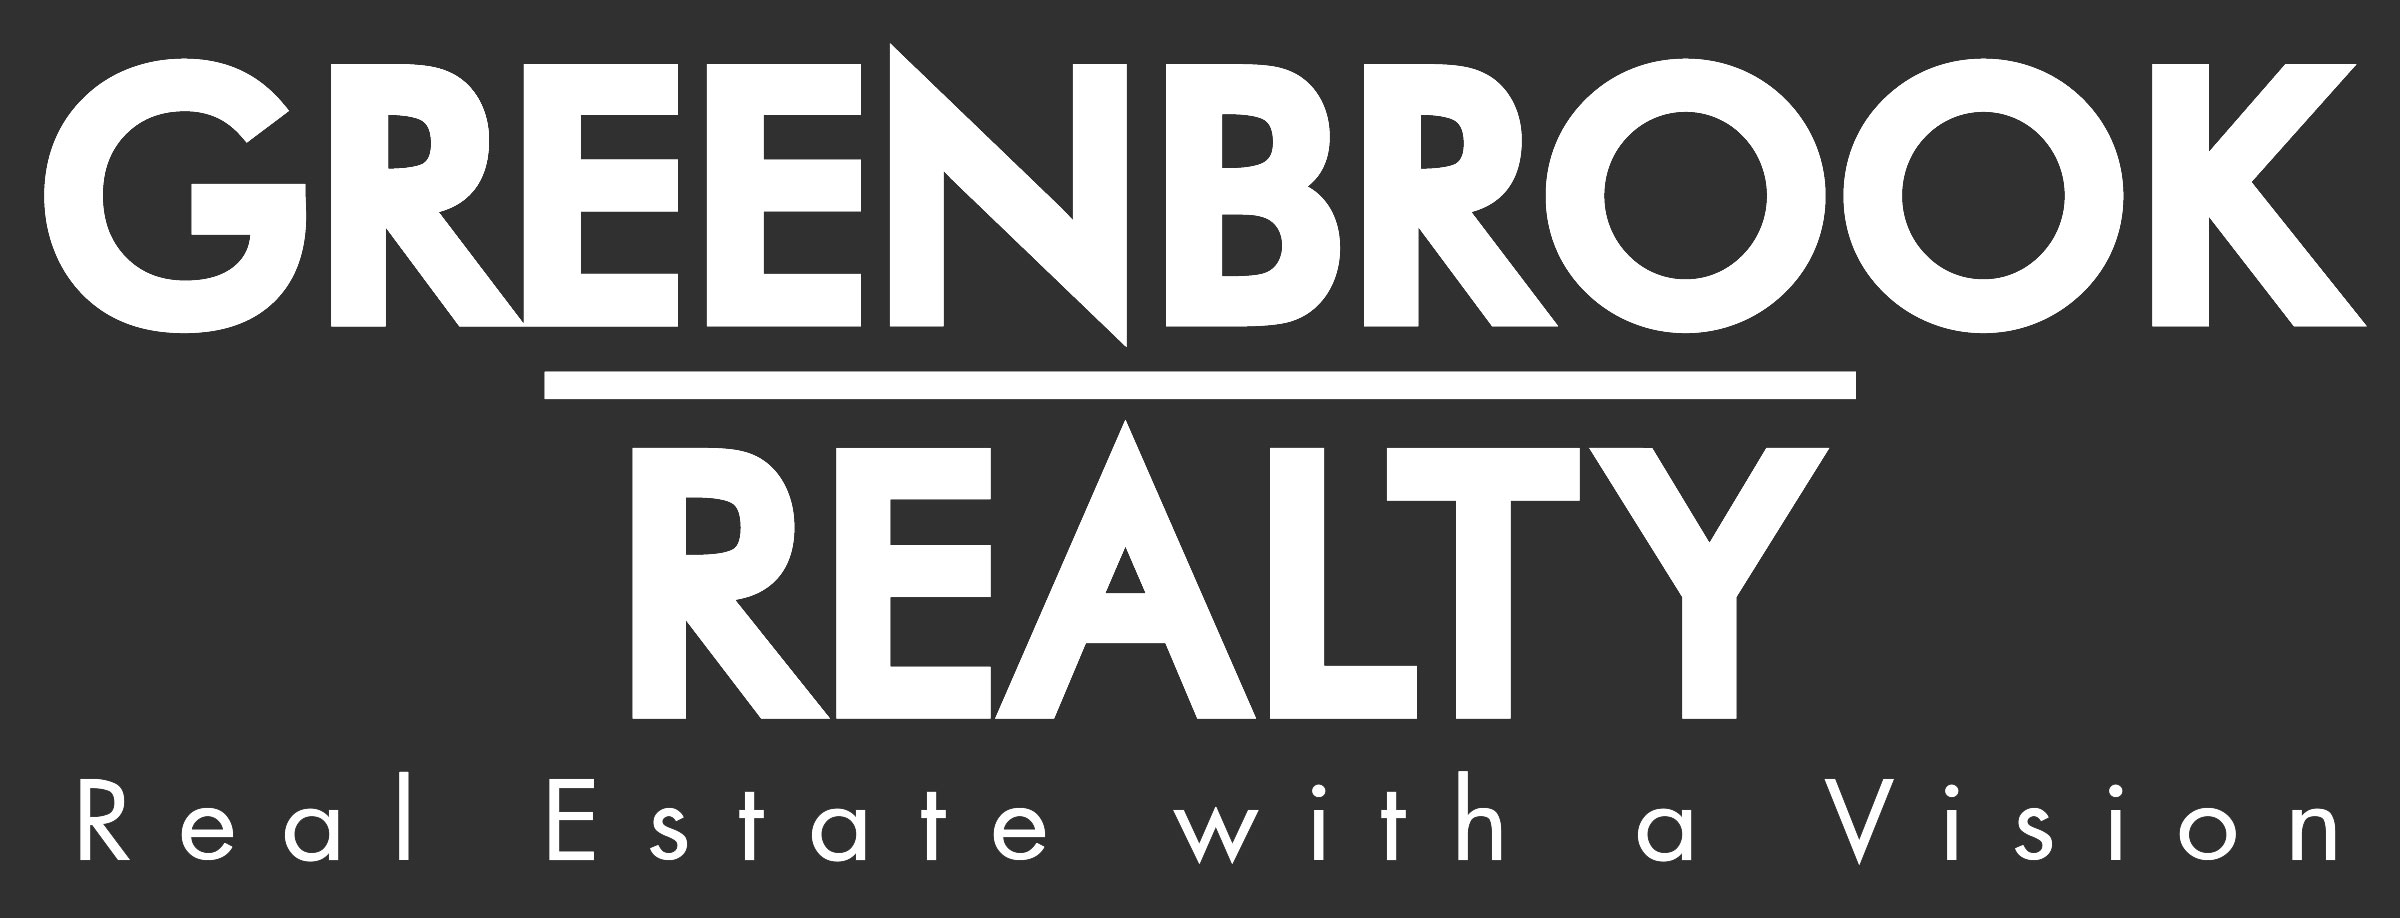 Greenbrook Realty